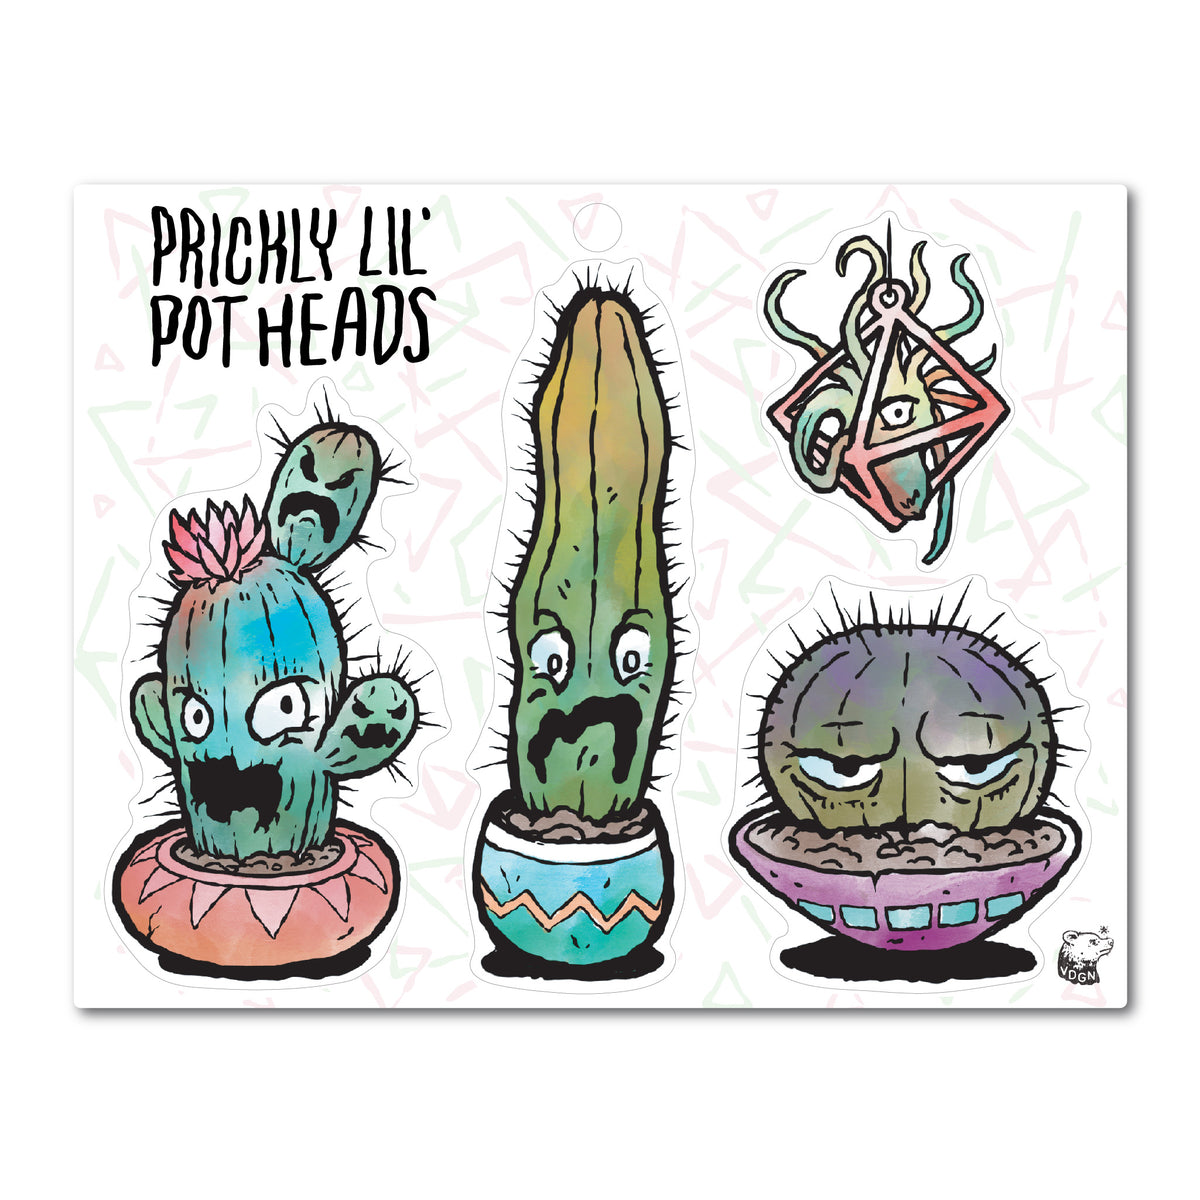 Prickly lil Potheads Sticker Sheet